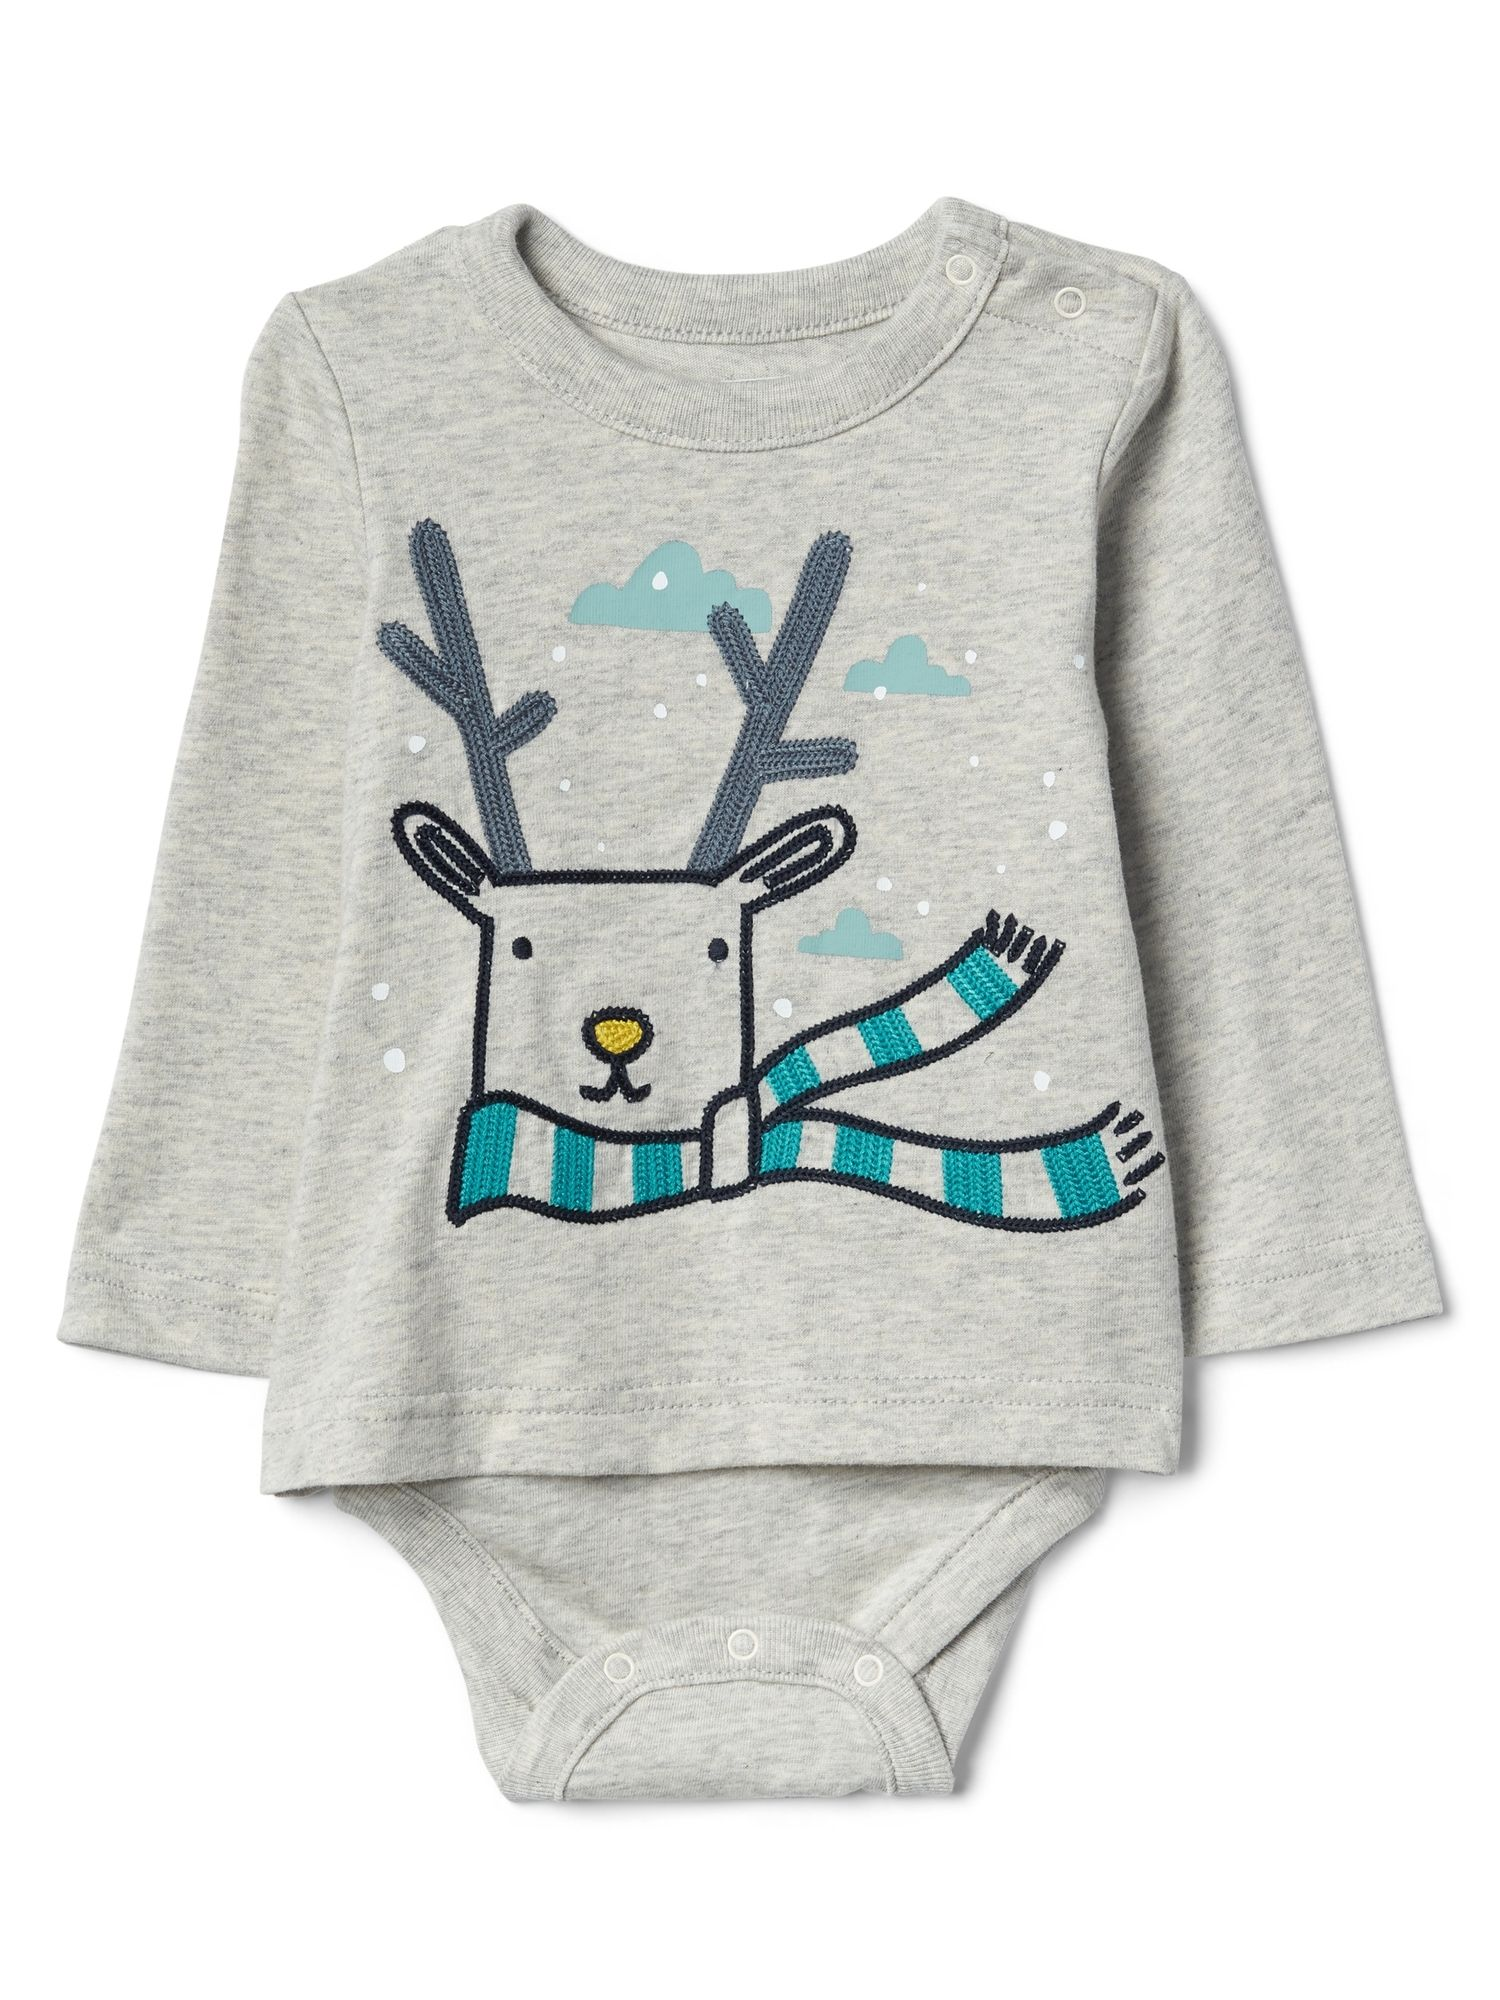 product photo Infant Toddler Graphic Tees Pinterest